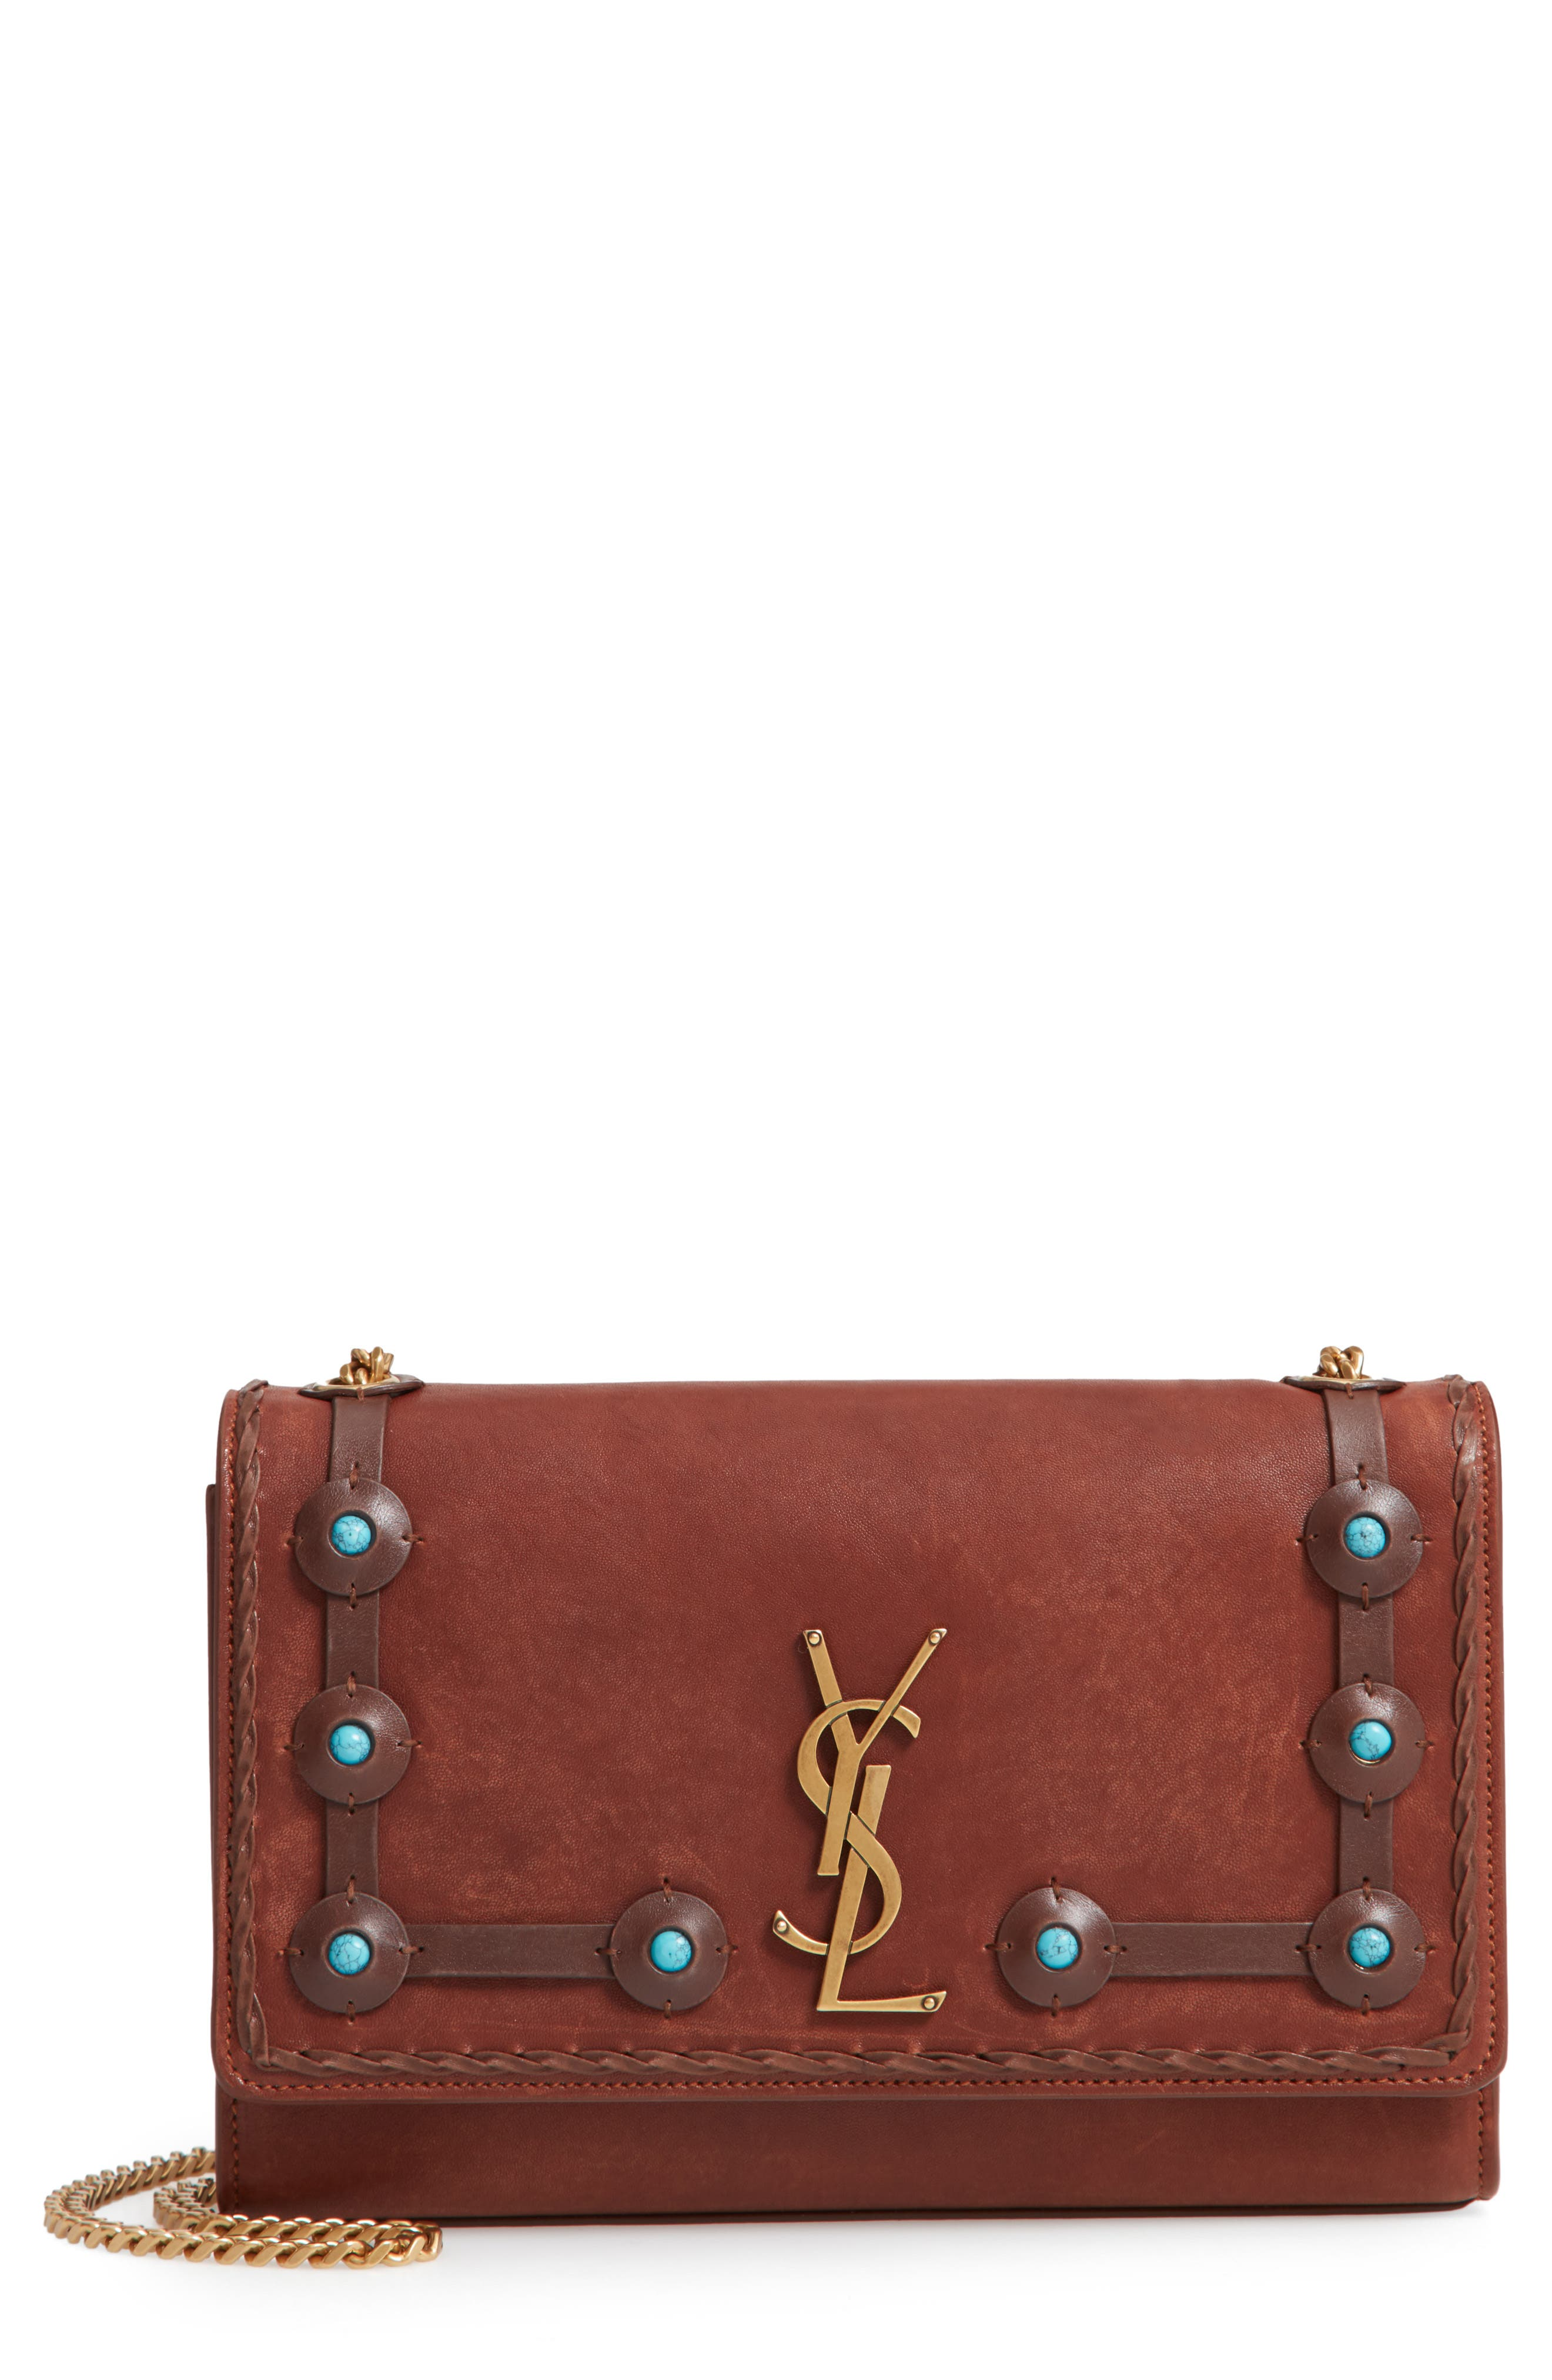 Medium Kate Studded Leather Crossbody Bag,                         Main,                         color, BROWN MULTI